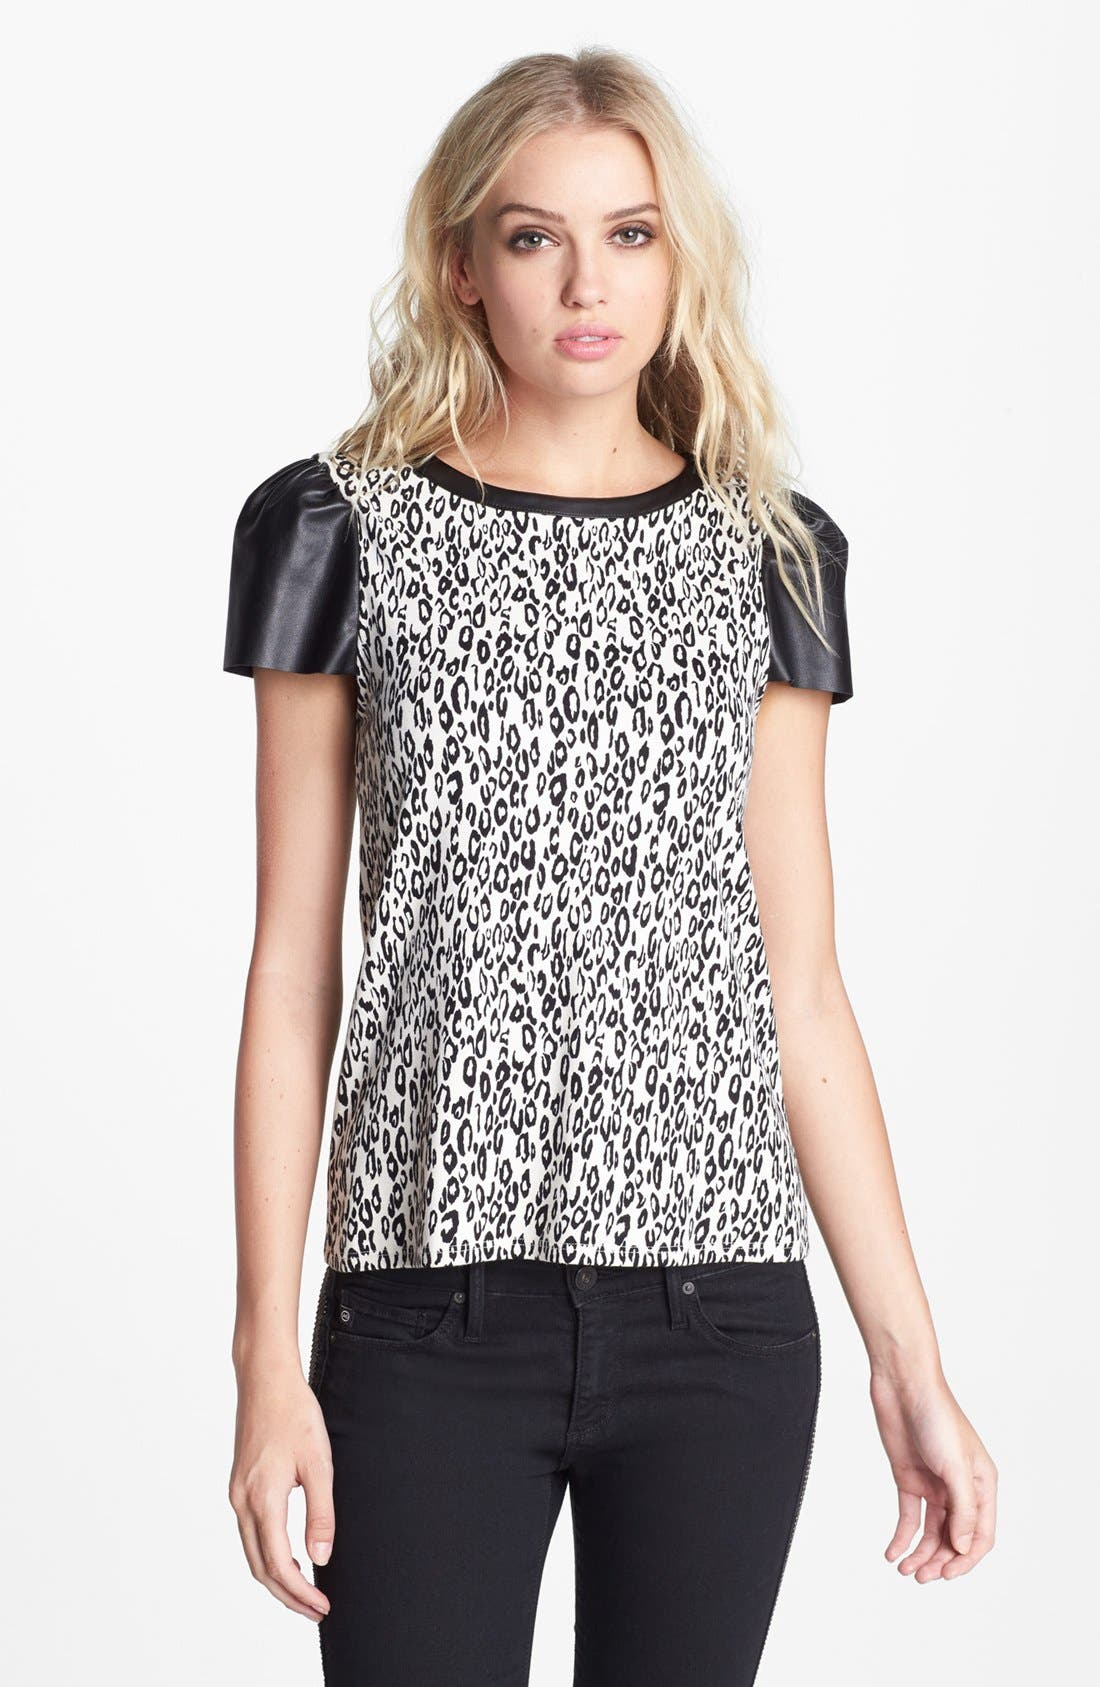 Alternate Image 1 Selected - Ella Moss 'Frankie' Faux Leather Sleeve Top